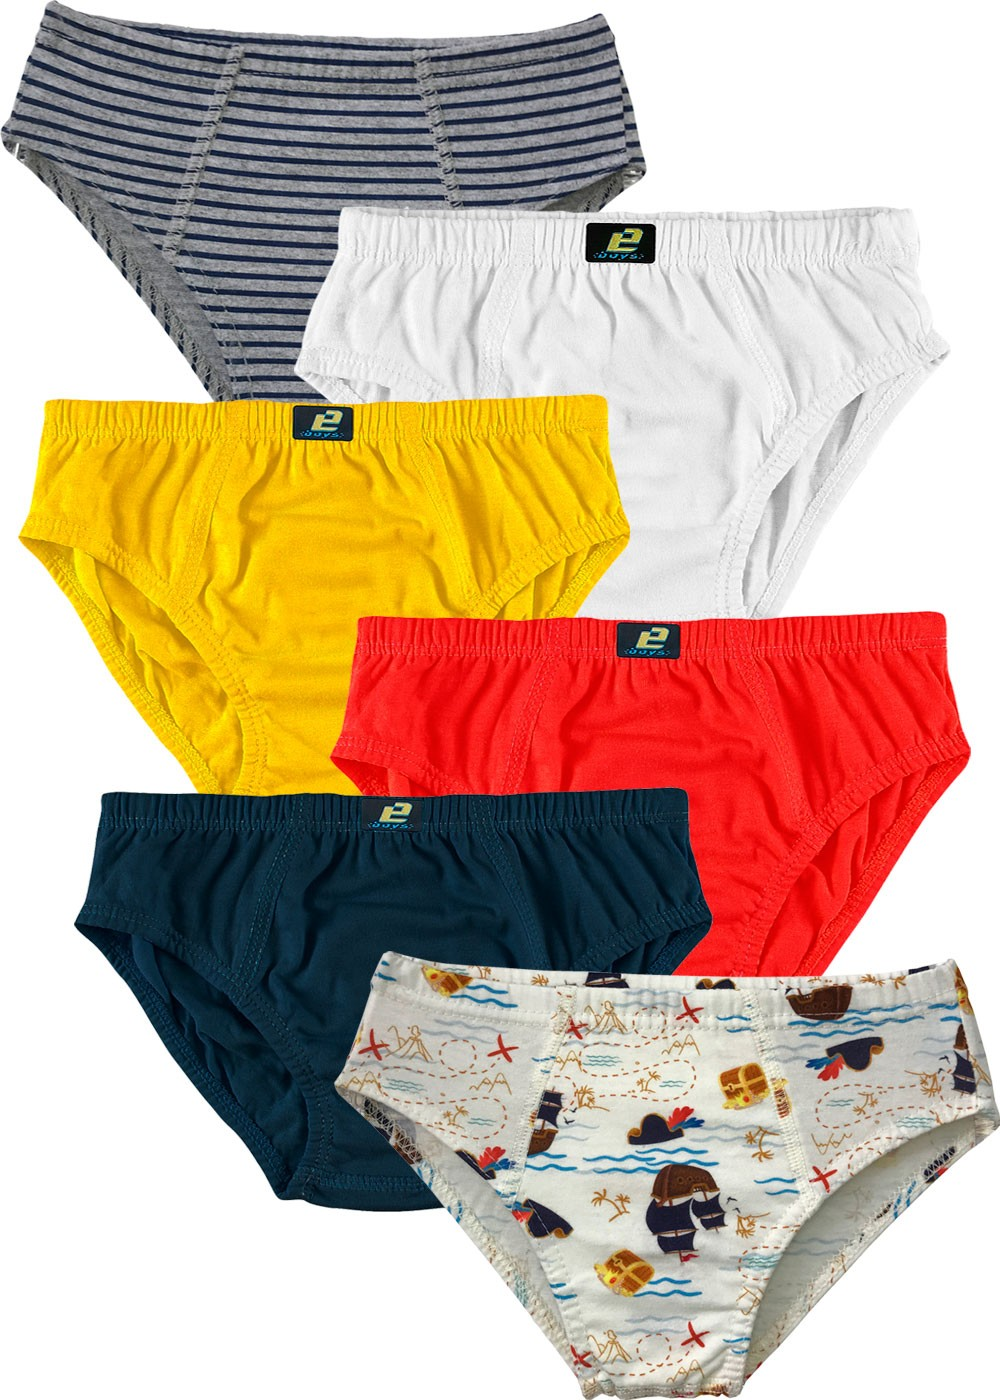 Kit 6 Cueca Infantil Slip - Everly